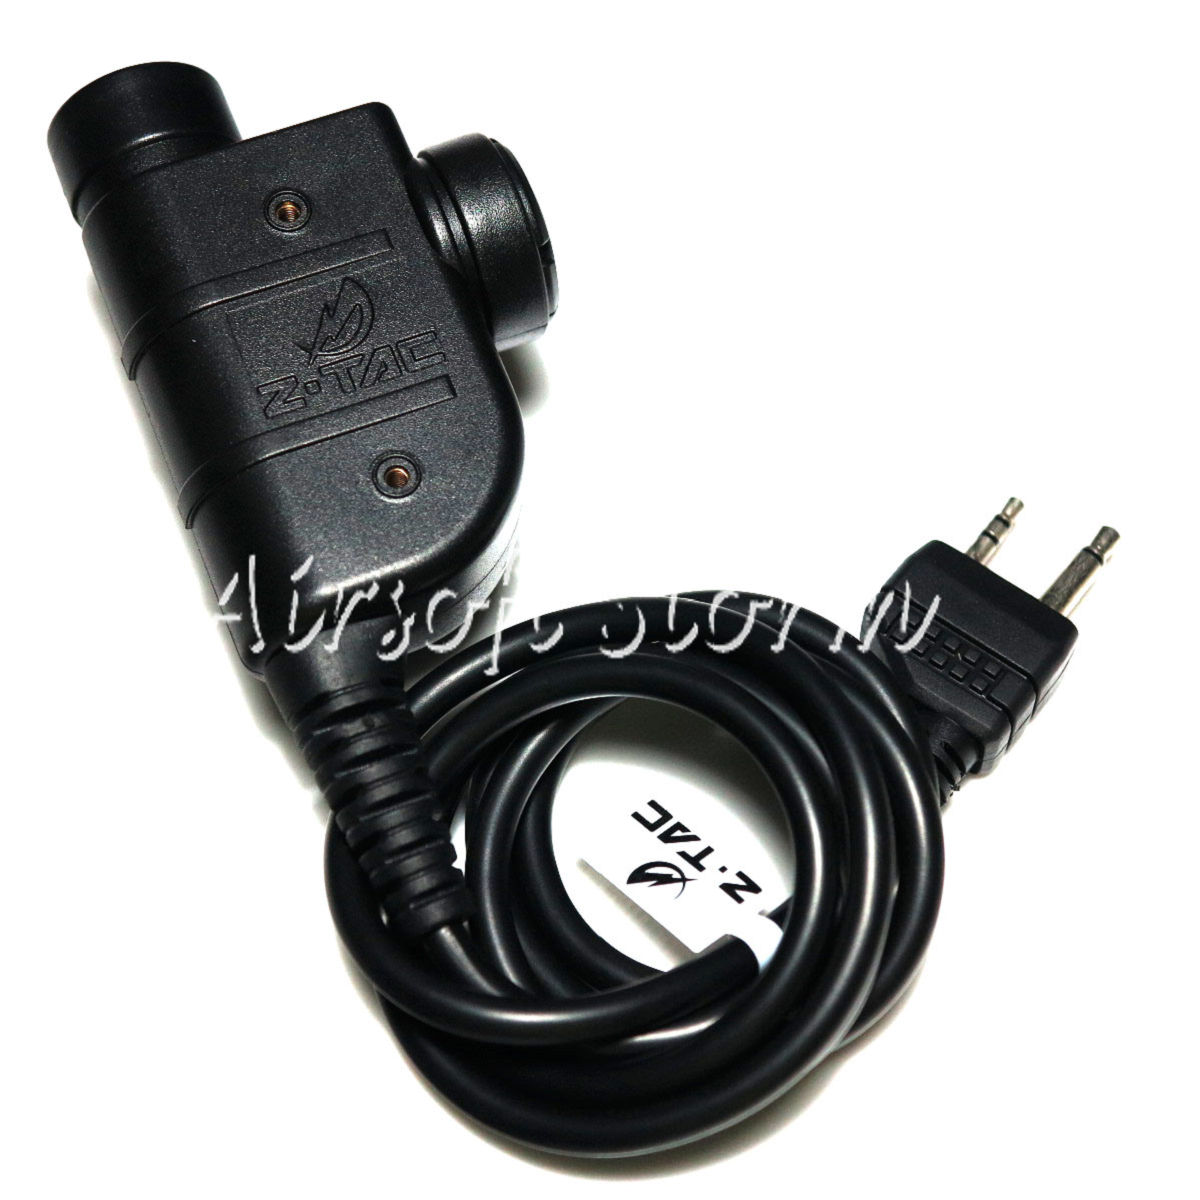 Airsoft SWAT Communications Gear Z Tactical Silynx Releases Chest PTT for Midland 2 Pin Radio